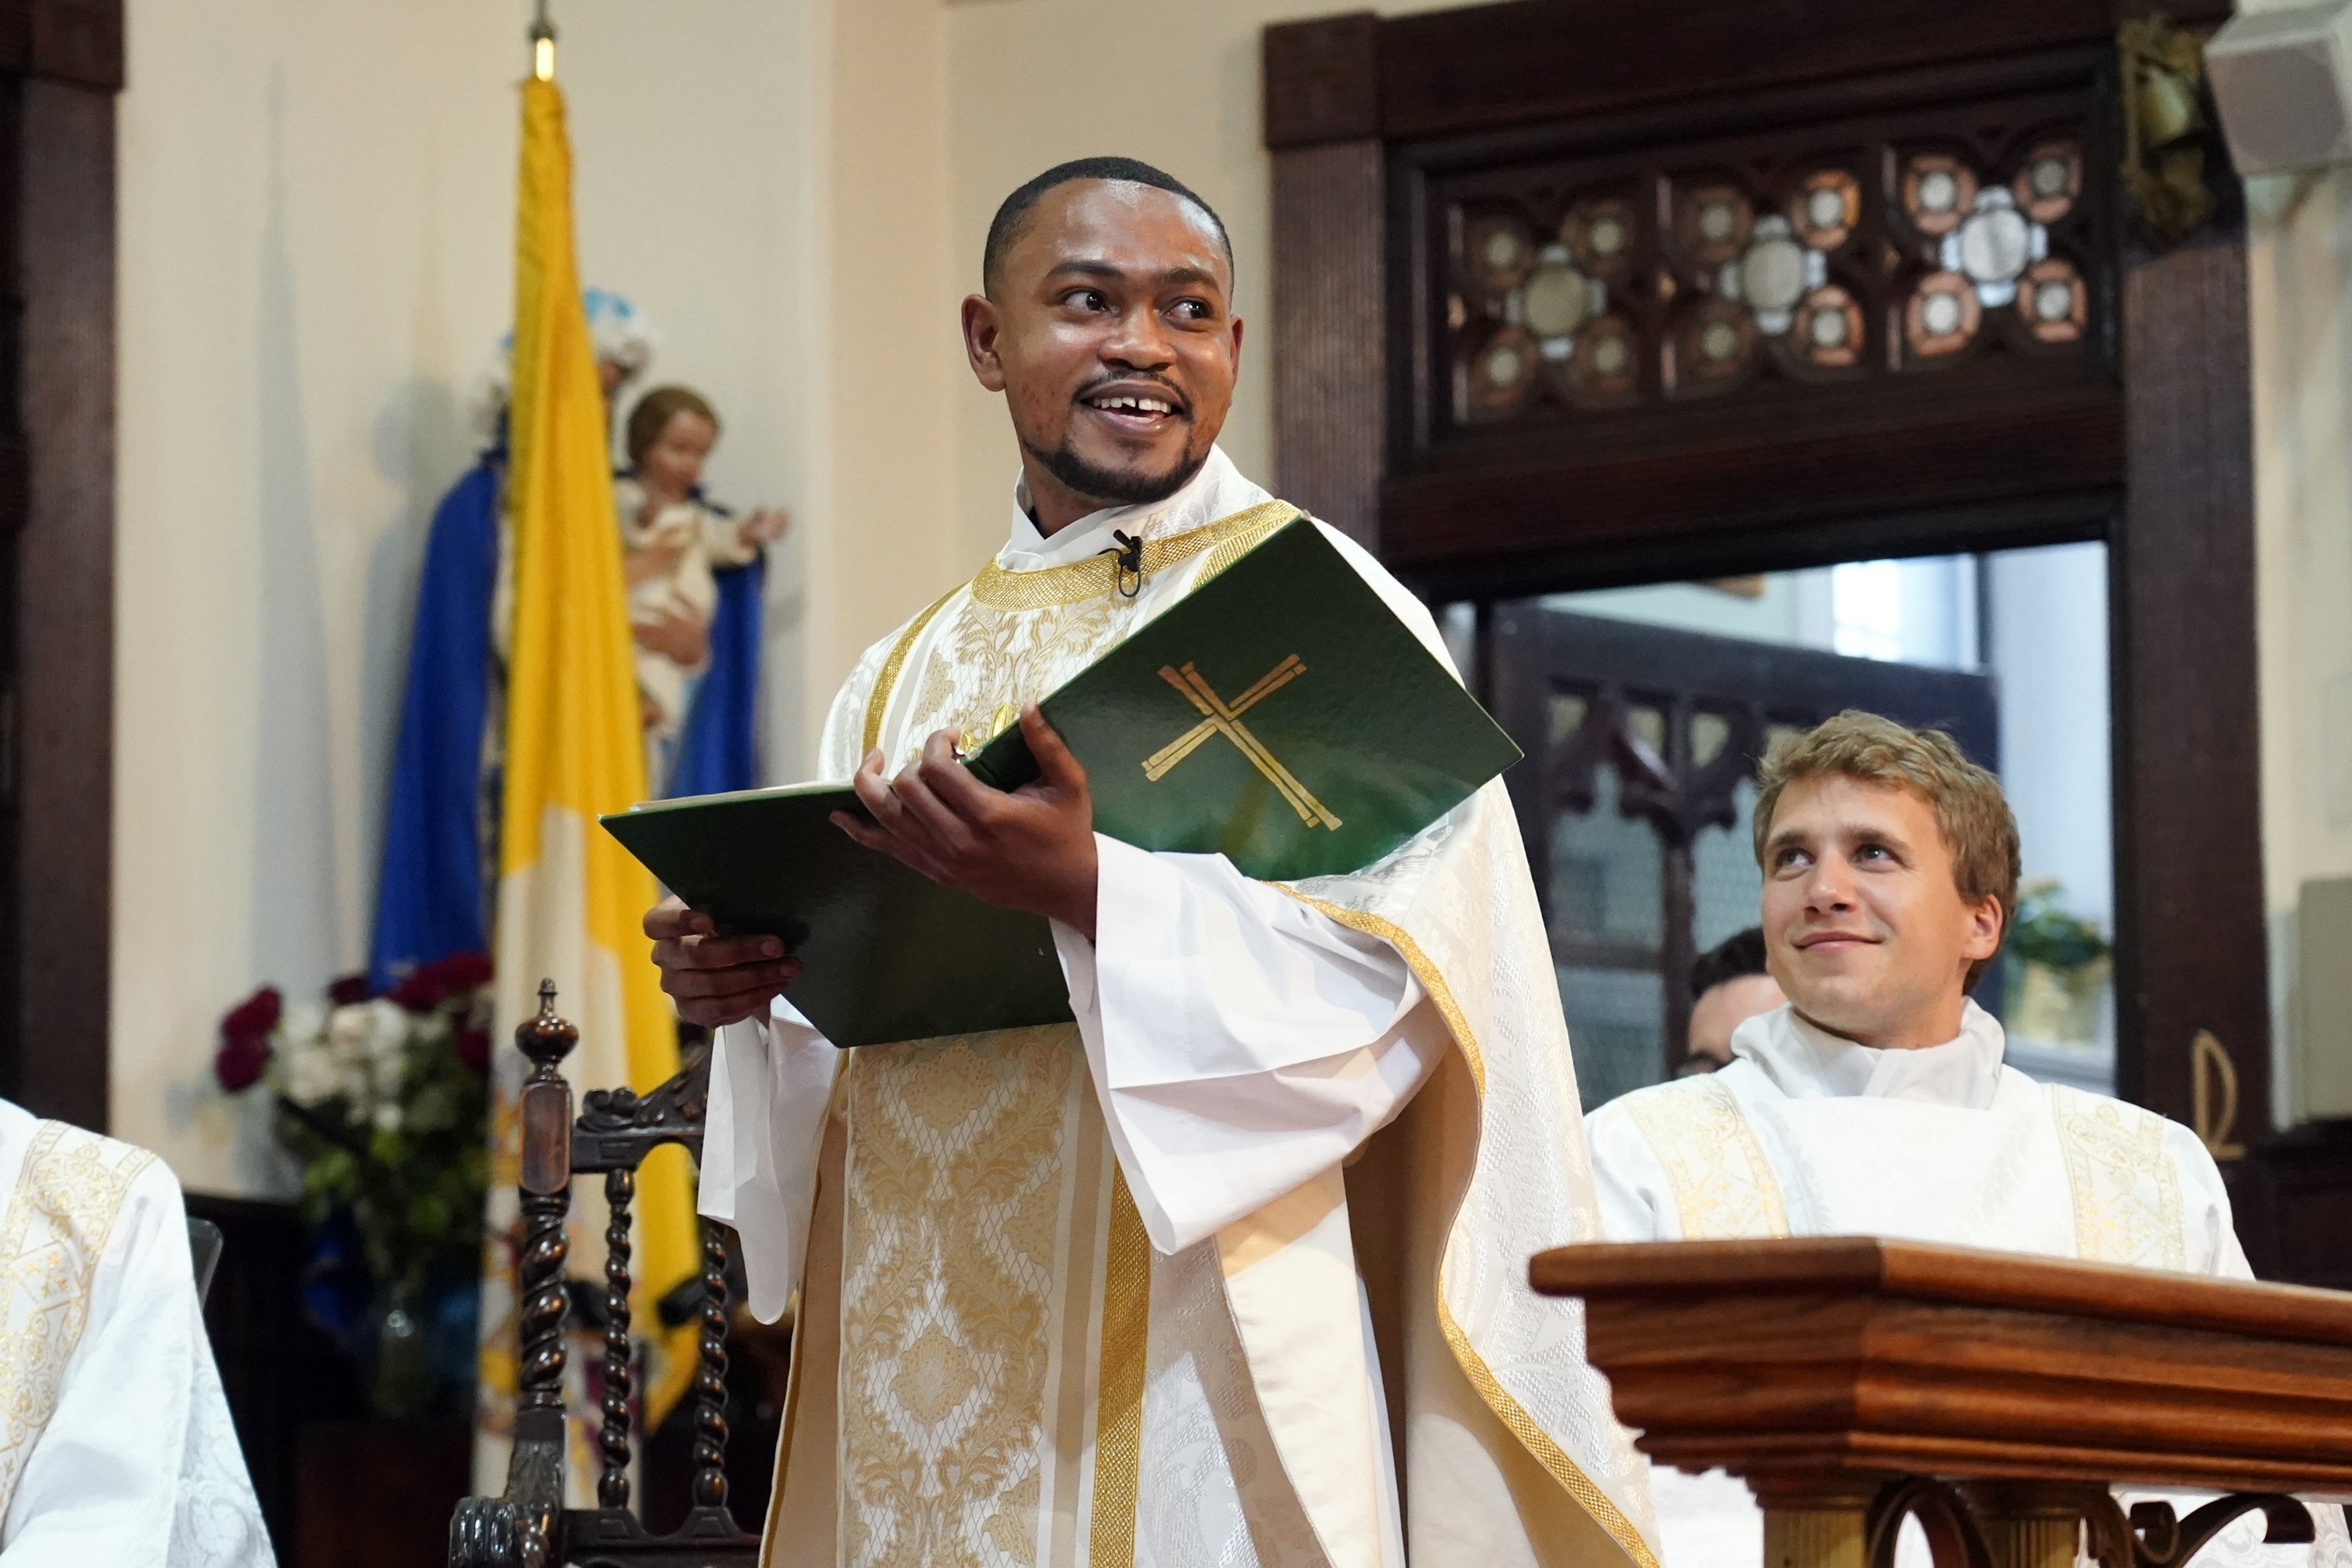 Father Wesbee Victor smiles as he celebrates his first Mass as a priest May 29, 2021, at St. Catherine of Genoa Church in New York City.